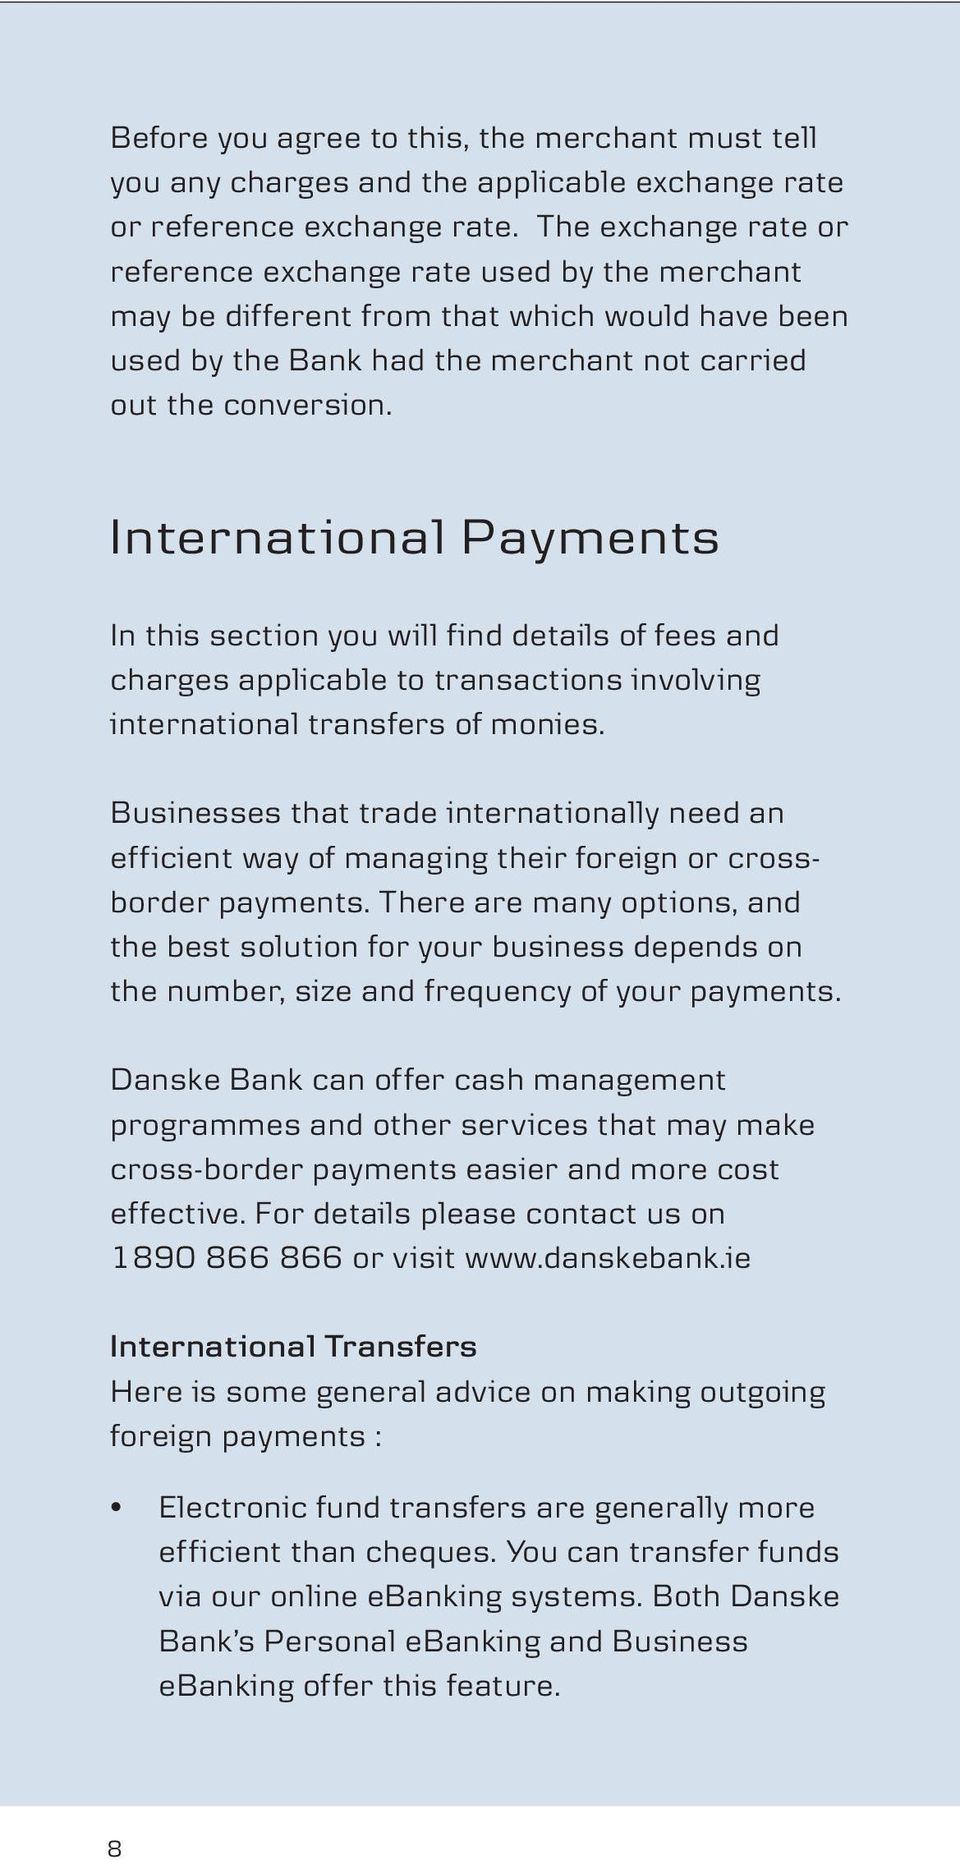 Internat ional Payments In this section you will find details of fees and charges applicable to transactions involving international transfers of monies.